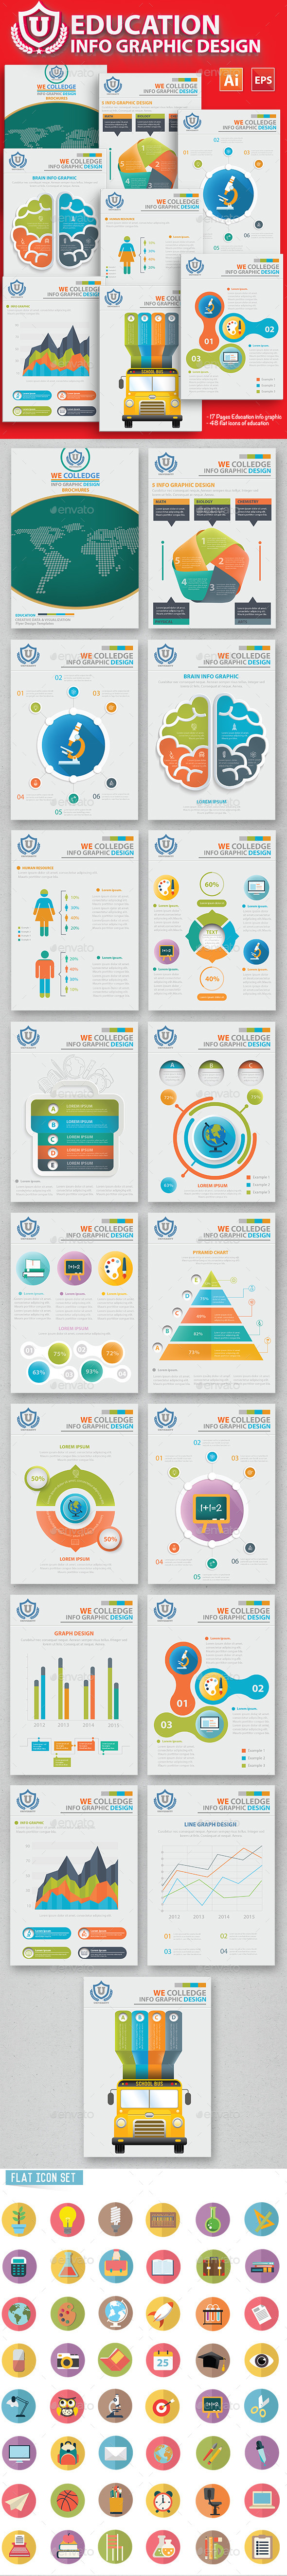 GraphicRiver Education Infographic 17 Pages Design 11776114